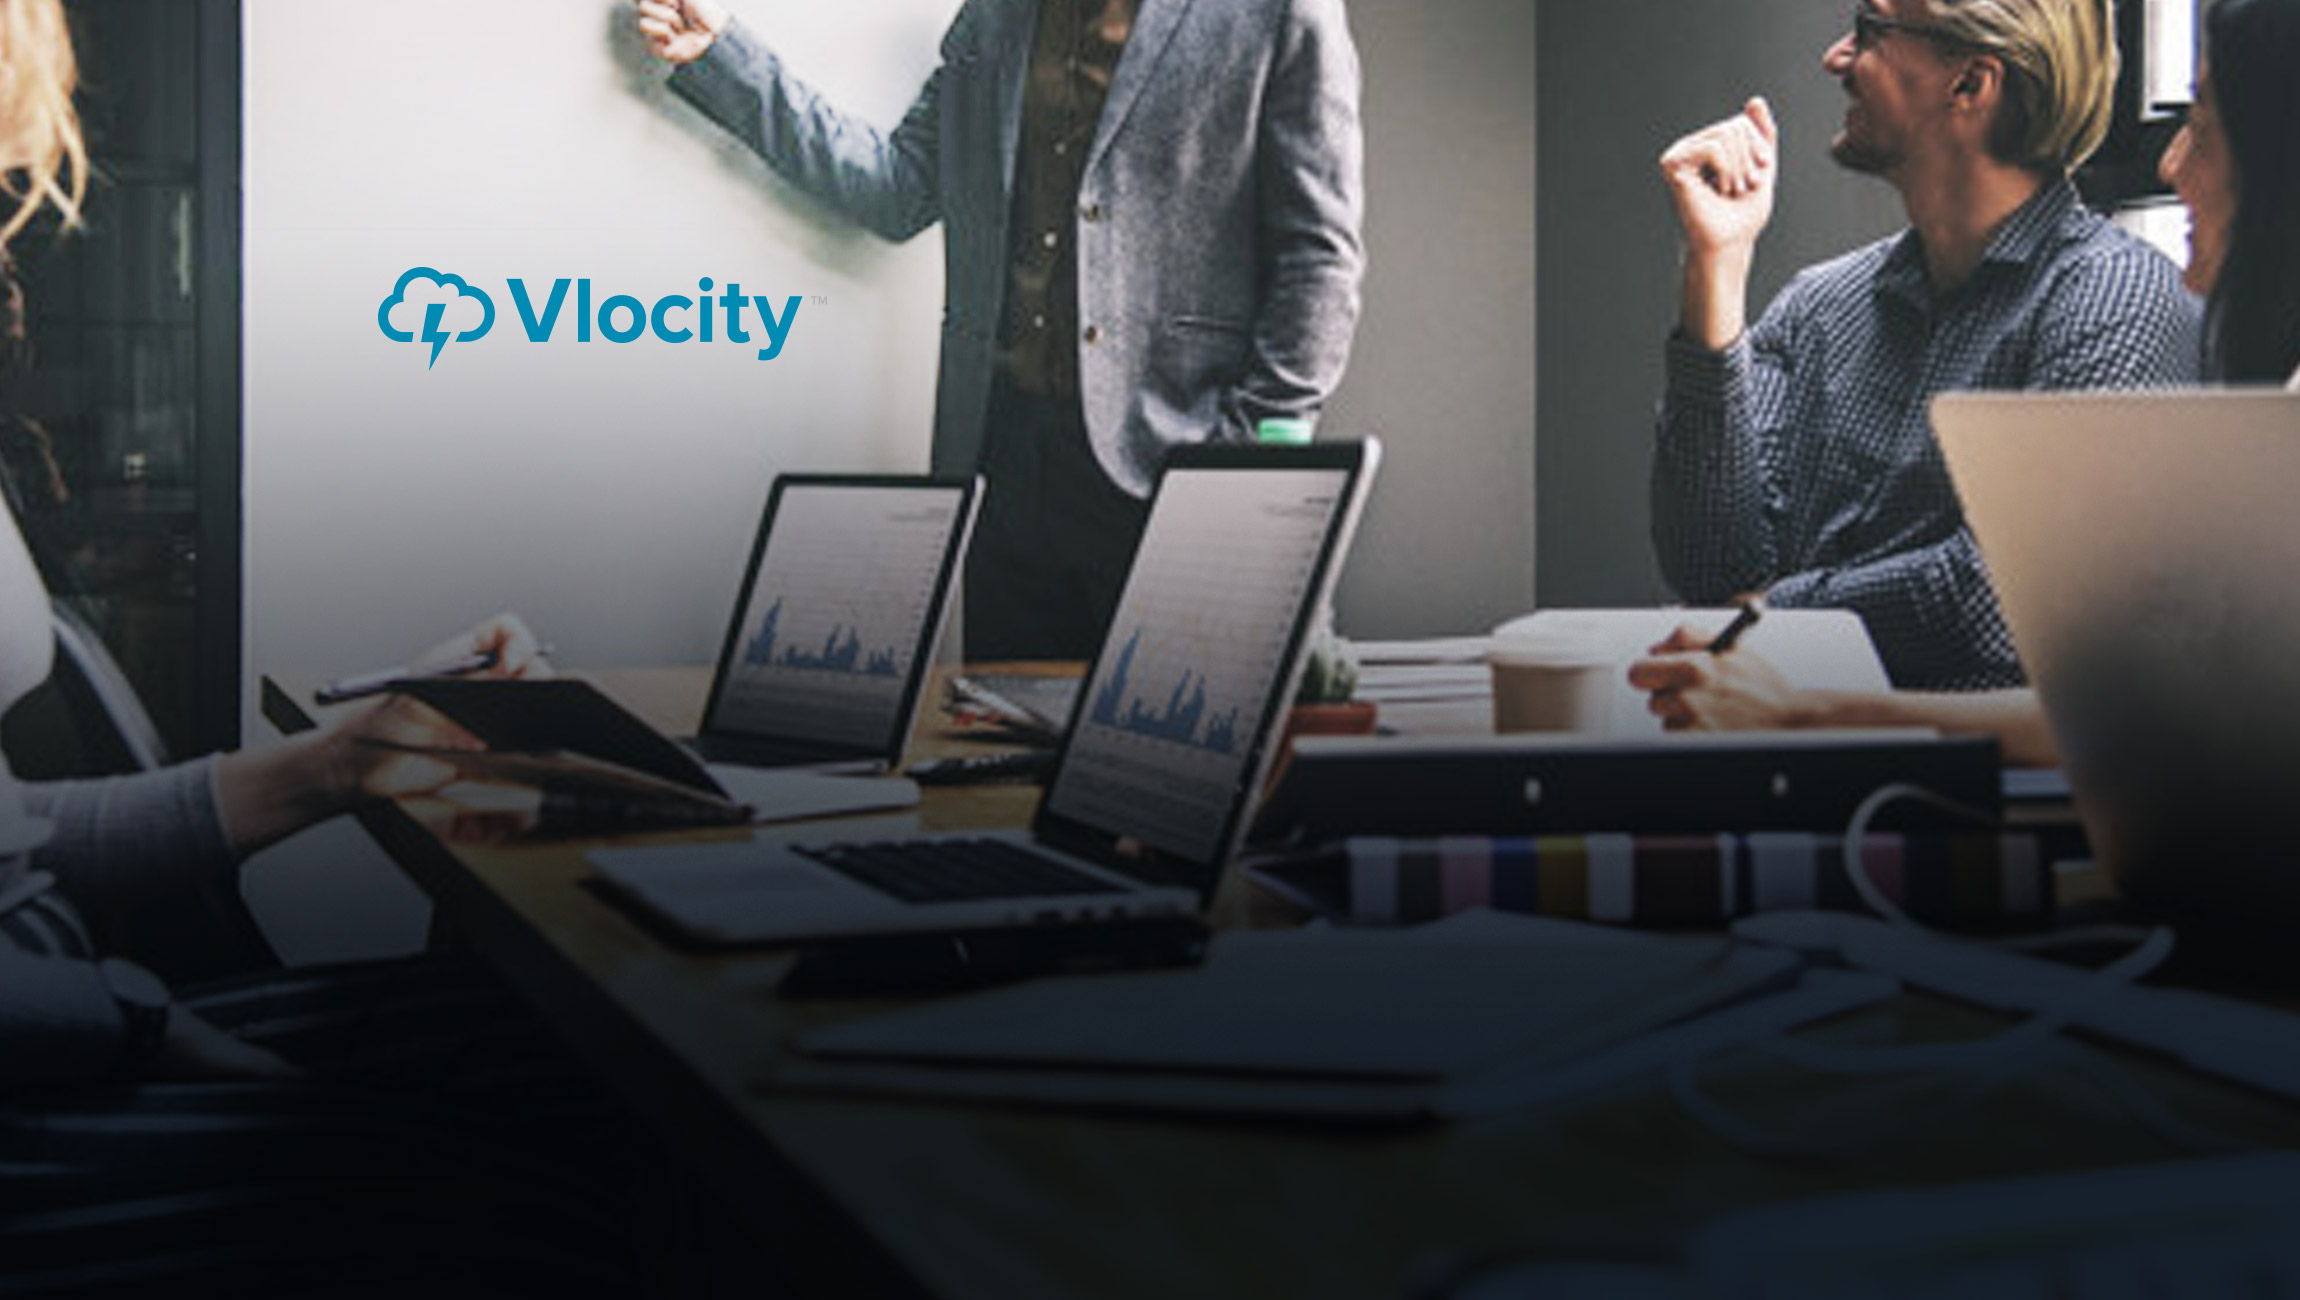 Deutsche Telekom Selects Vlocity to Simplify Buying Experiences, Accelerate Time to Market, and Grow Revenue Through New Services